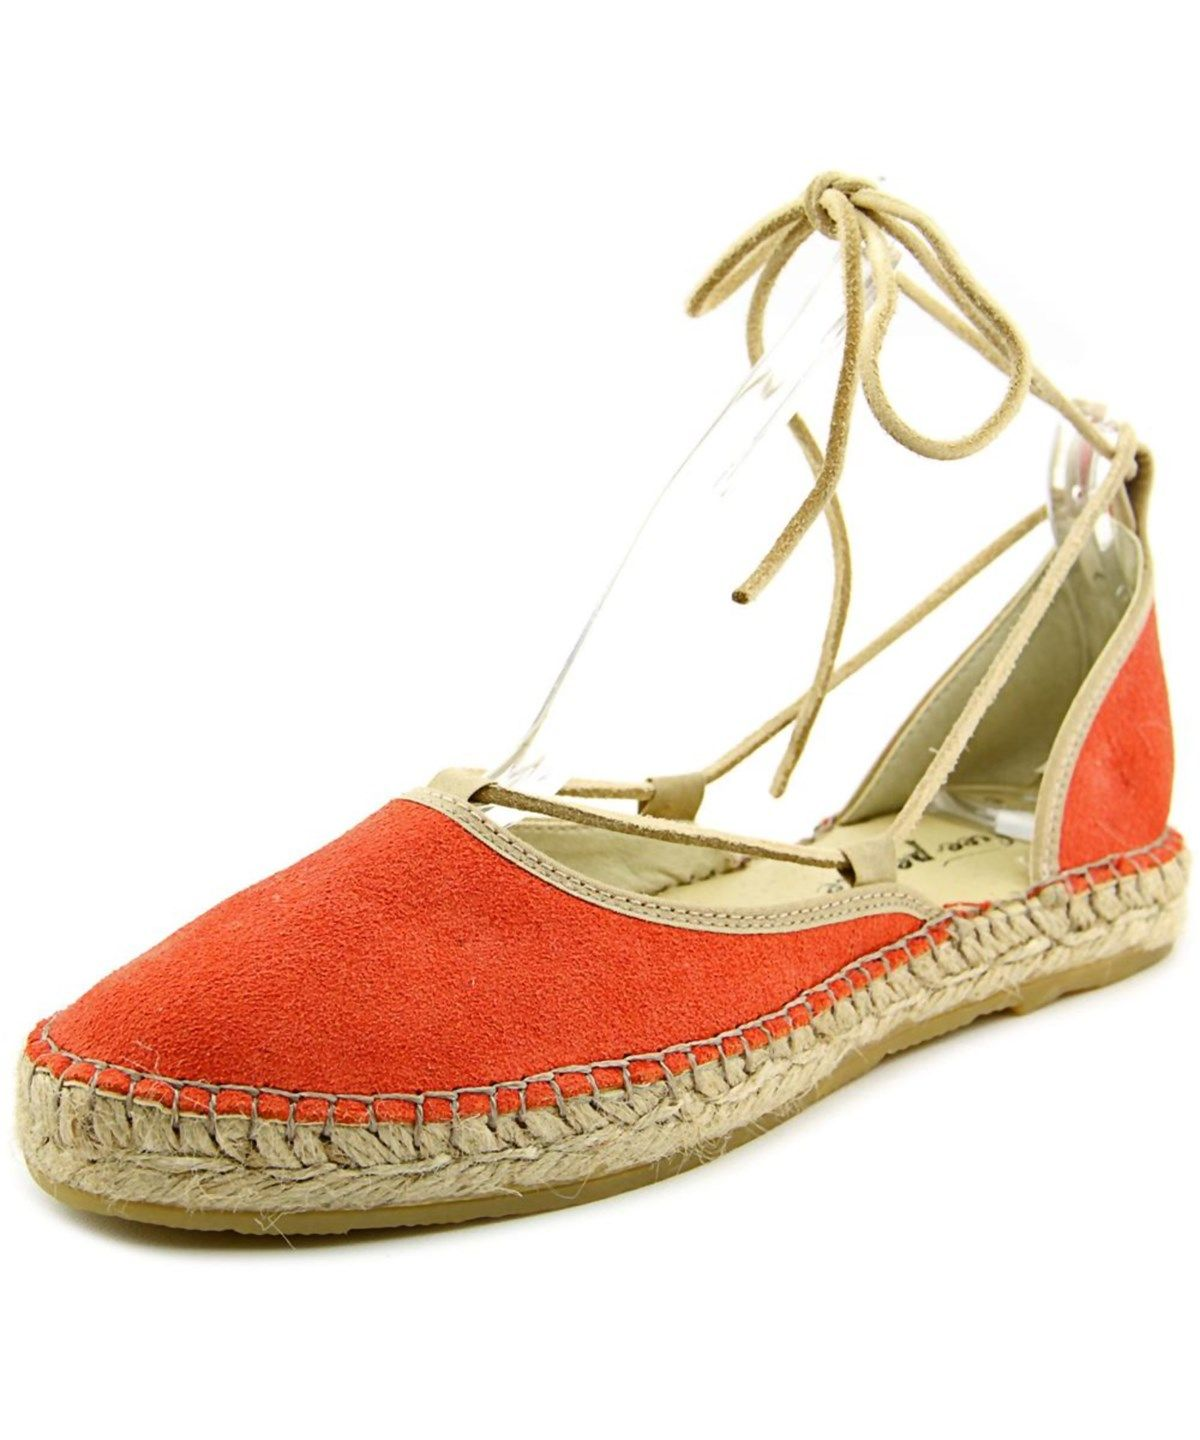 81cb9dad5 FREE PEOPLE Free People Marina Lace Up Round Toe Suede Espadrille'.  #freepeople #shoes #flats